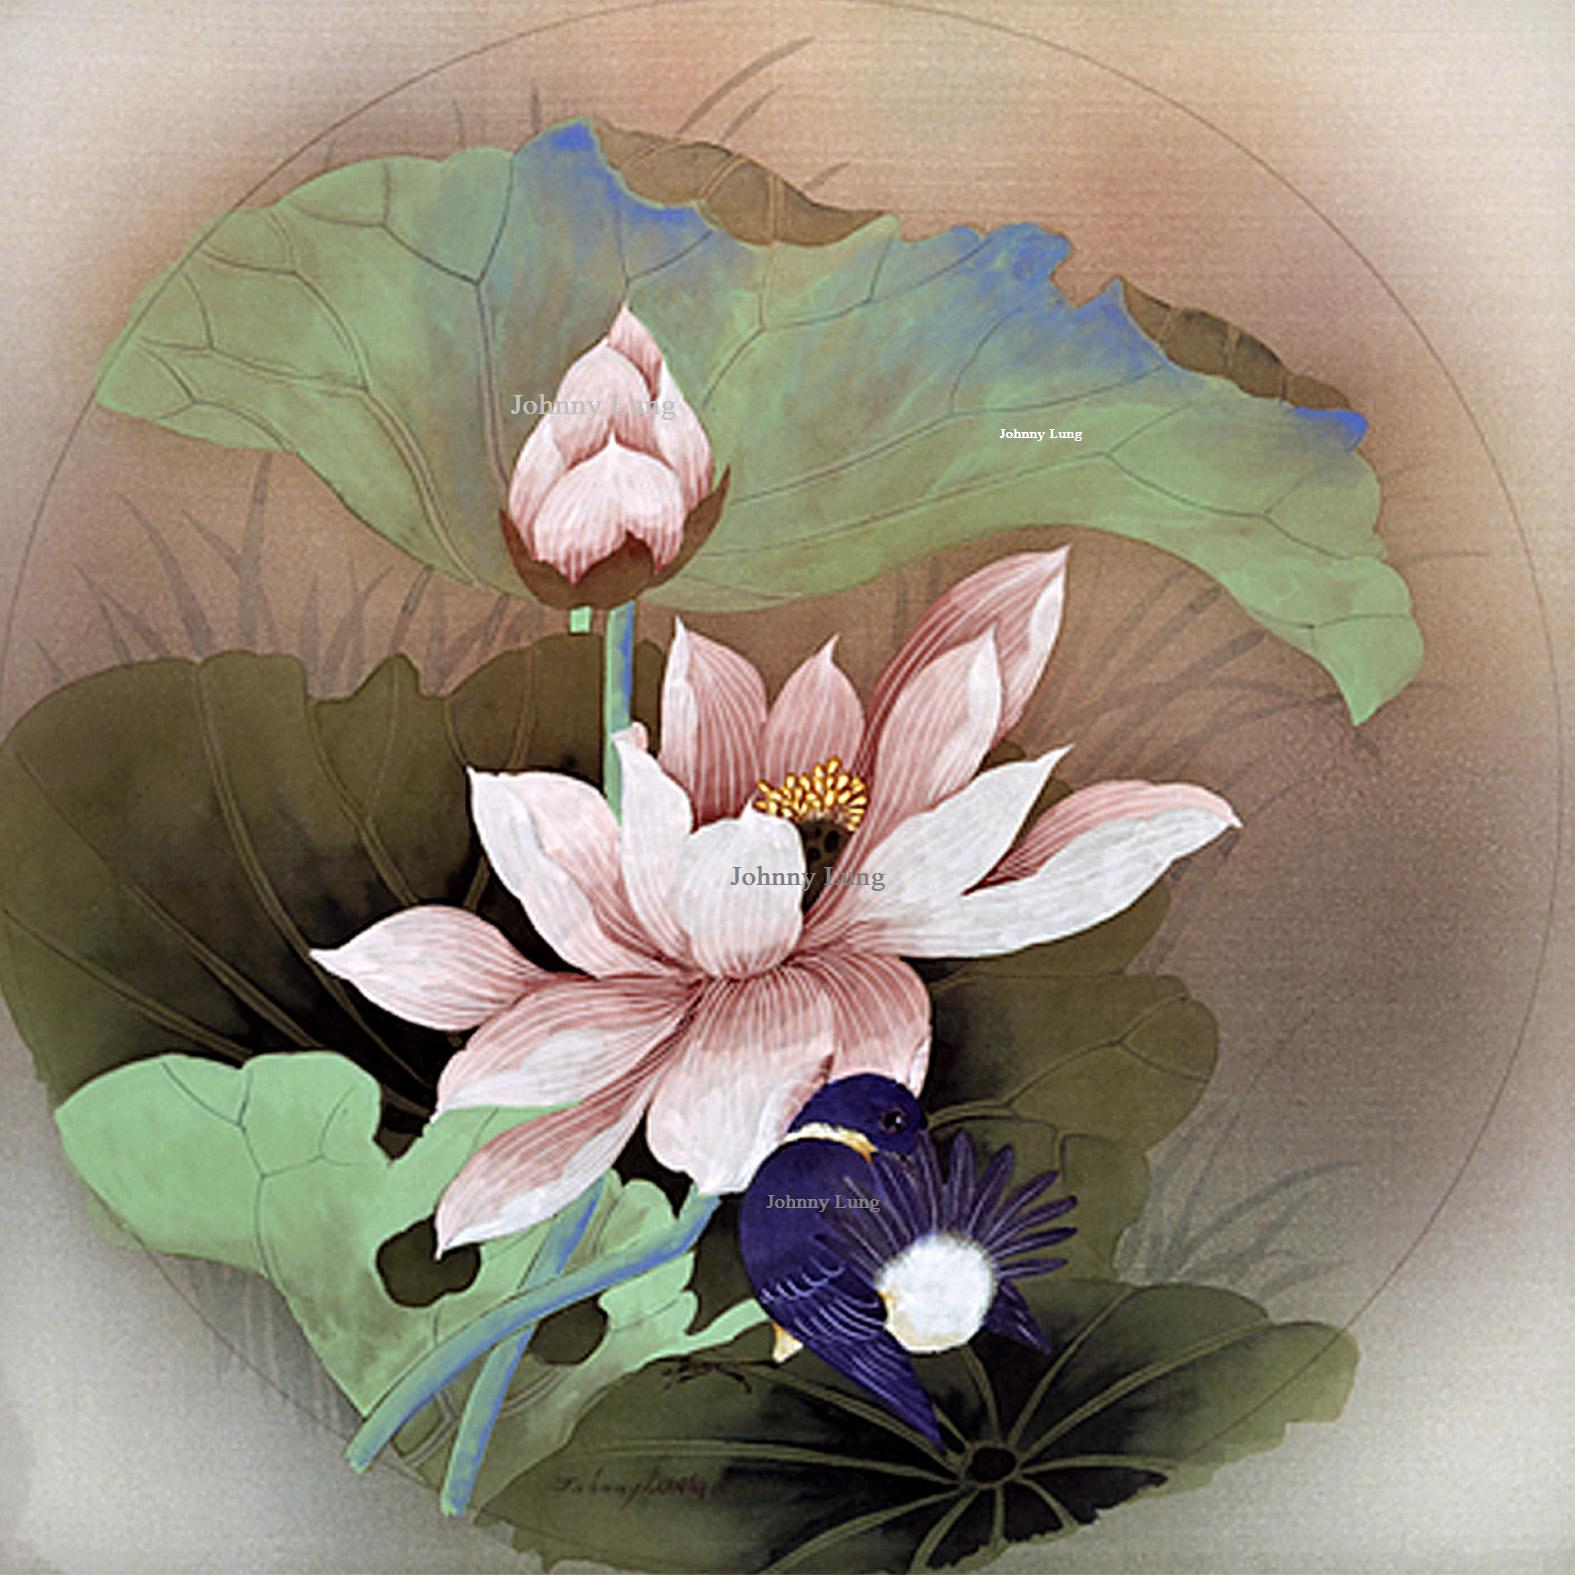 The collection johnny lung master chinese painter blue bird playing on lotus izmirmasajfo